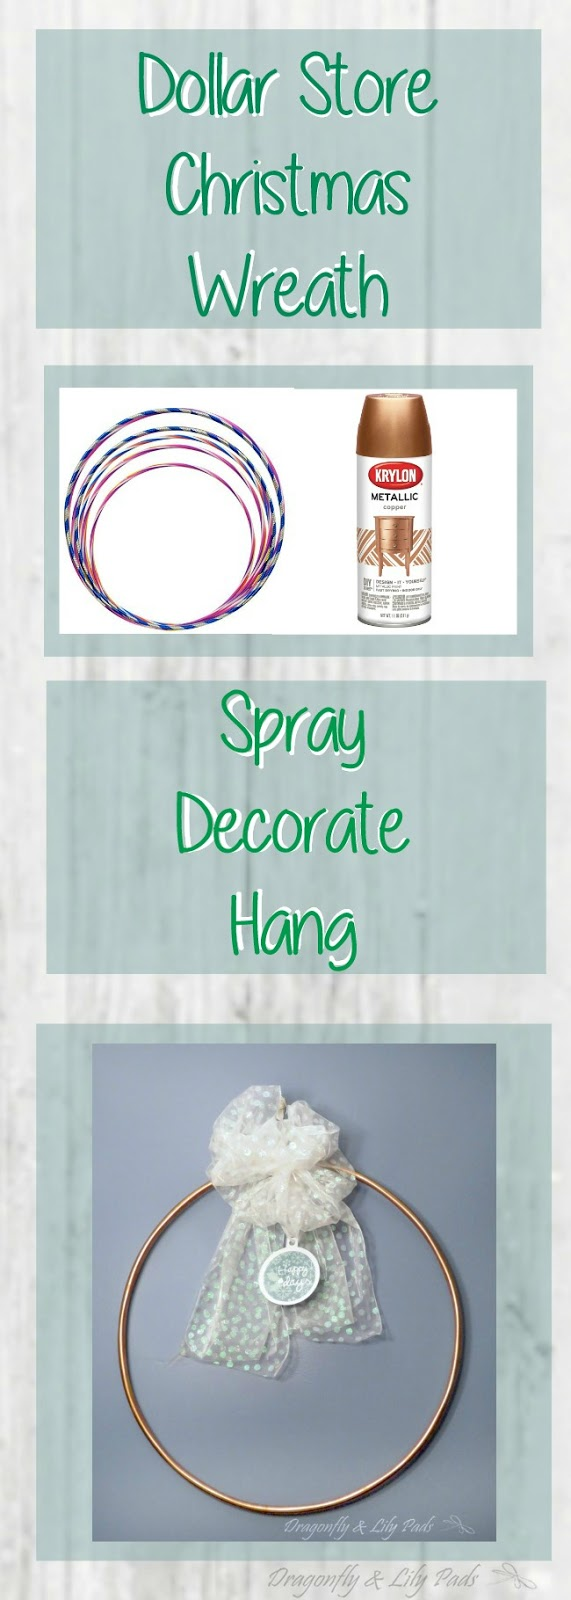 Dollar Store Christmas Wreath Pinterest image with directions.